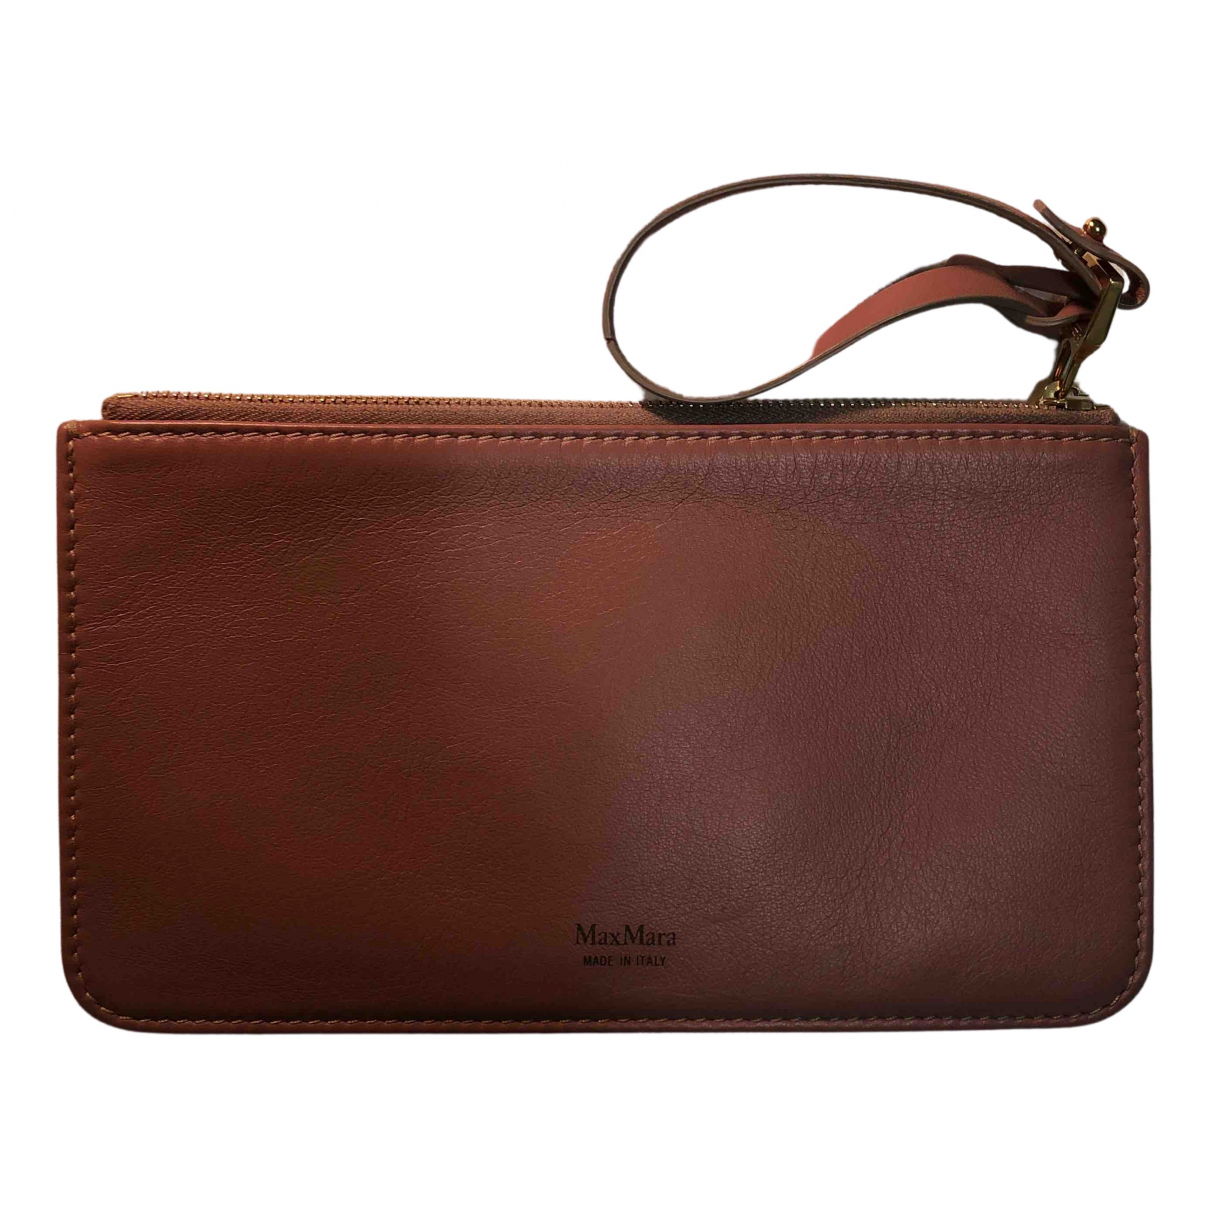 Max Mara N Pink Leather Purses, wallet & cases for Women N